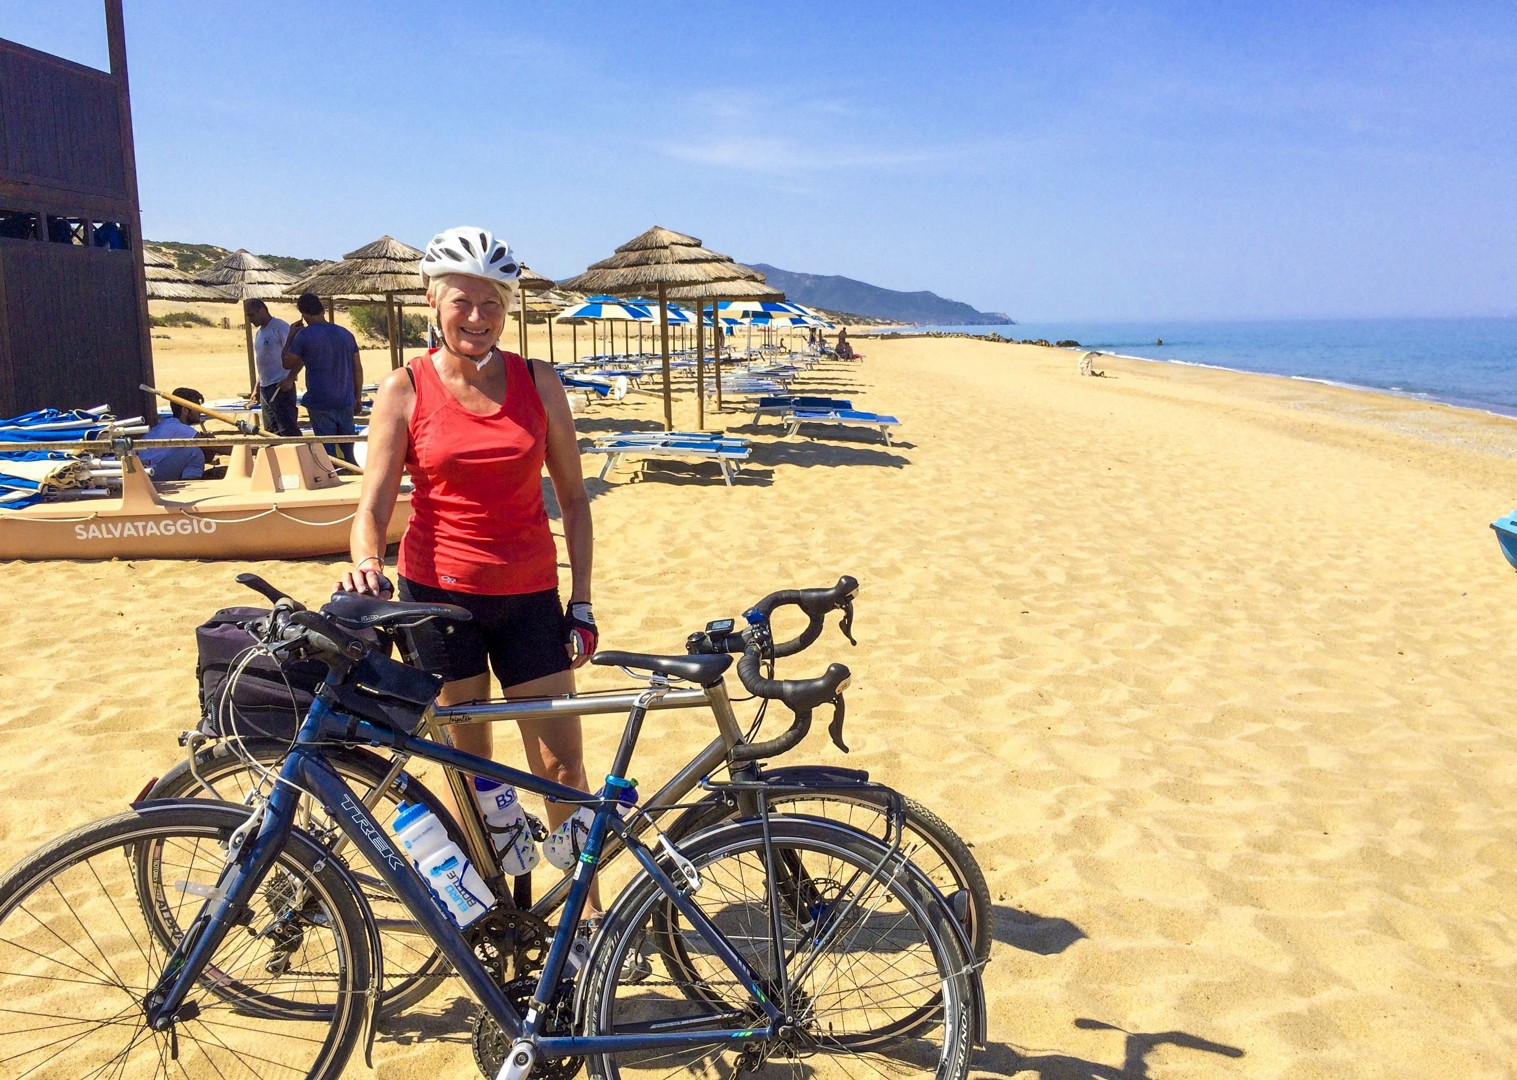 sunny-beaches-sardinia-italy-golden-sands-cycling-holiday.jpg - Italy - Sardinia - Coast to Coast - Self-Guided Leisure Cycling Holiday - Leisure Cycling